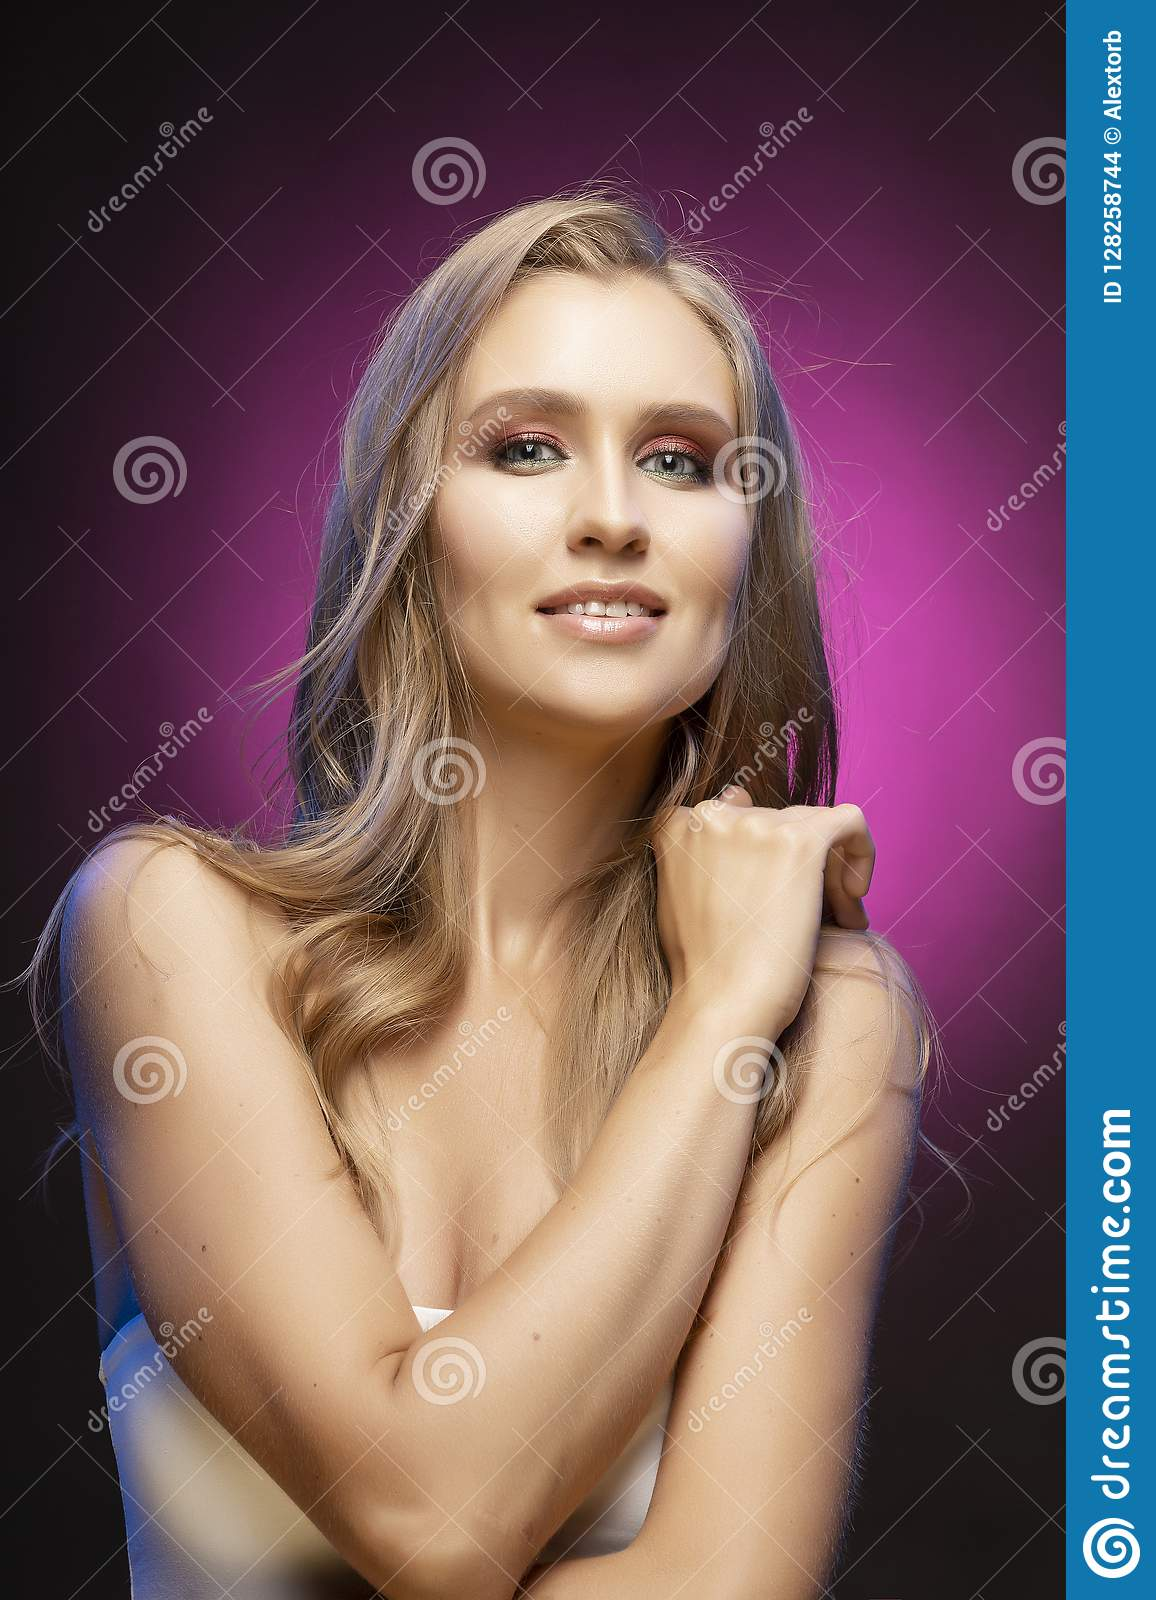 Woman with naked shoulder stock image. Image of beauty